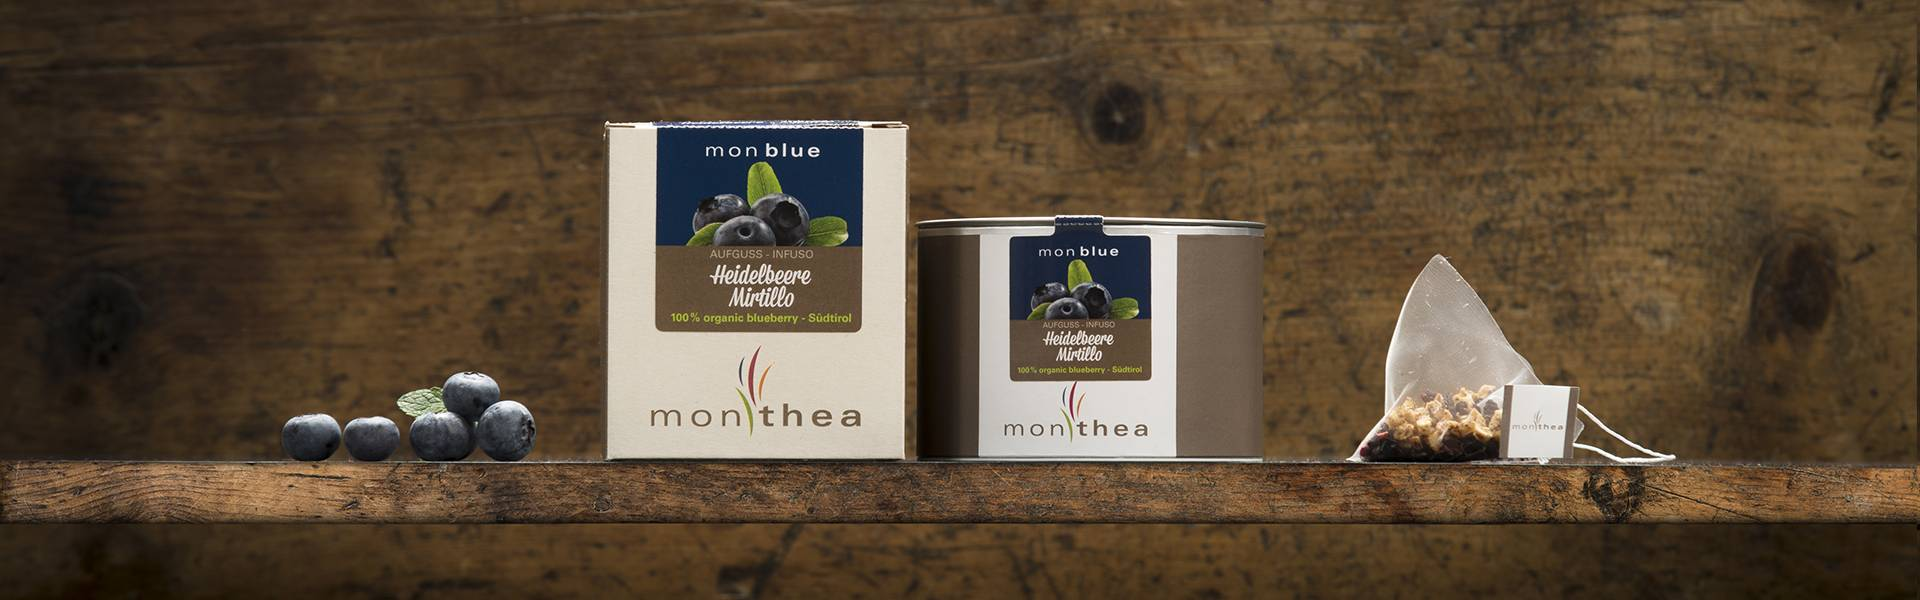 Organic blueberry tea monblue